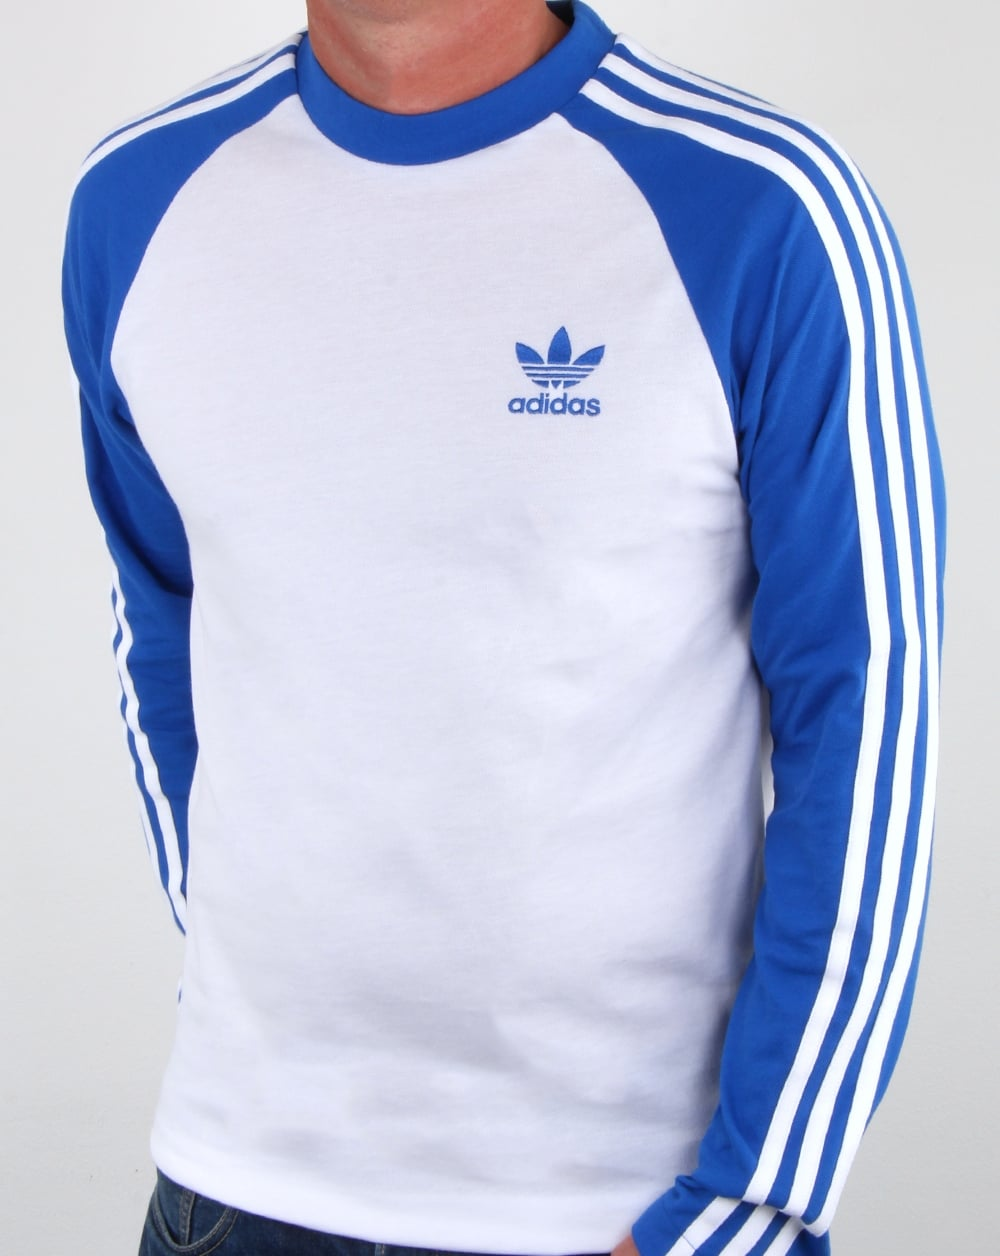 Adidas Originals Long Sleeve 3 Stripes T Shirt Whiteblue